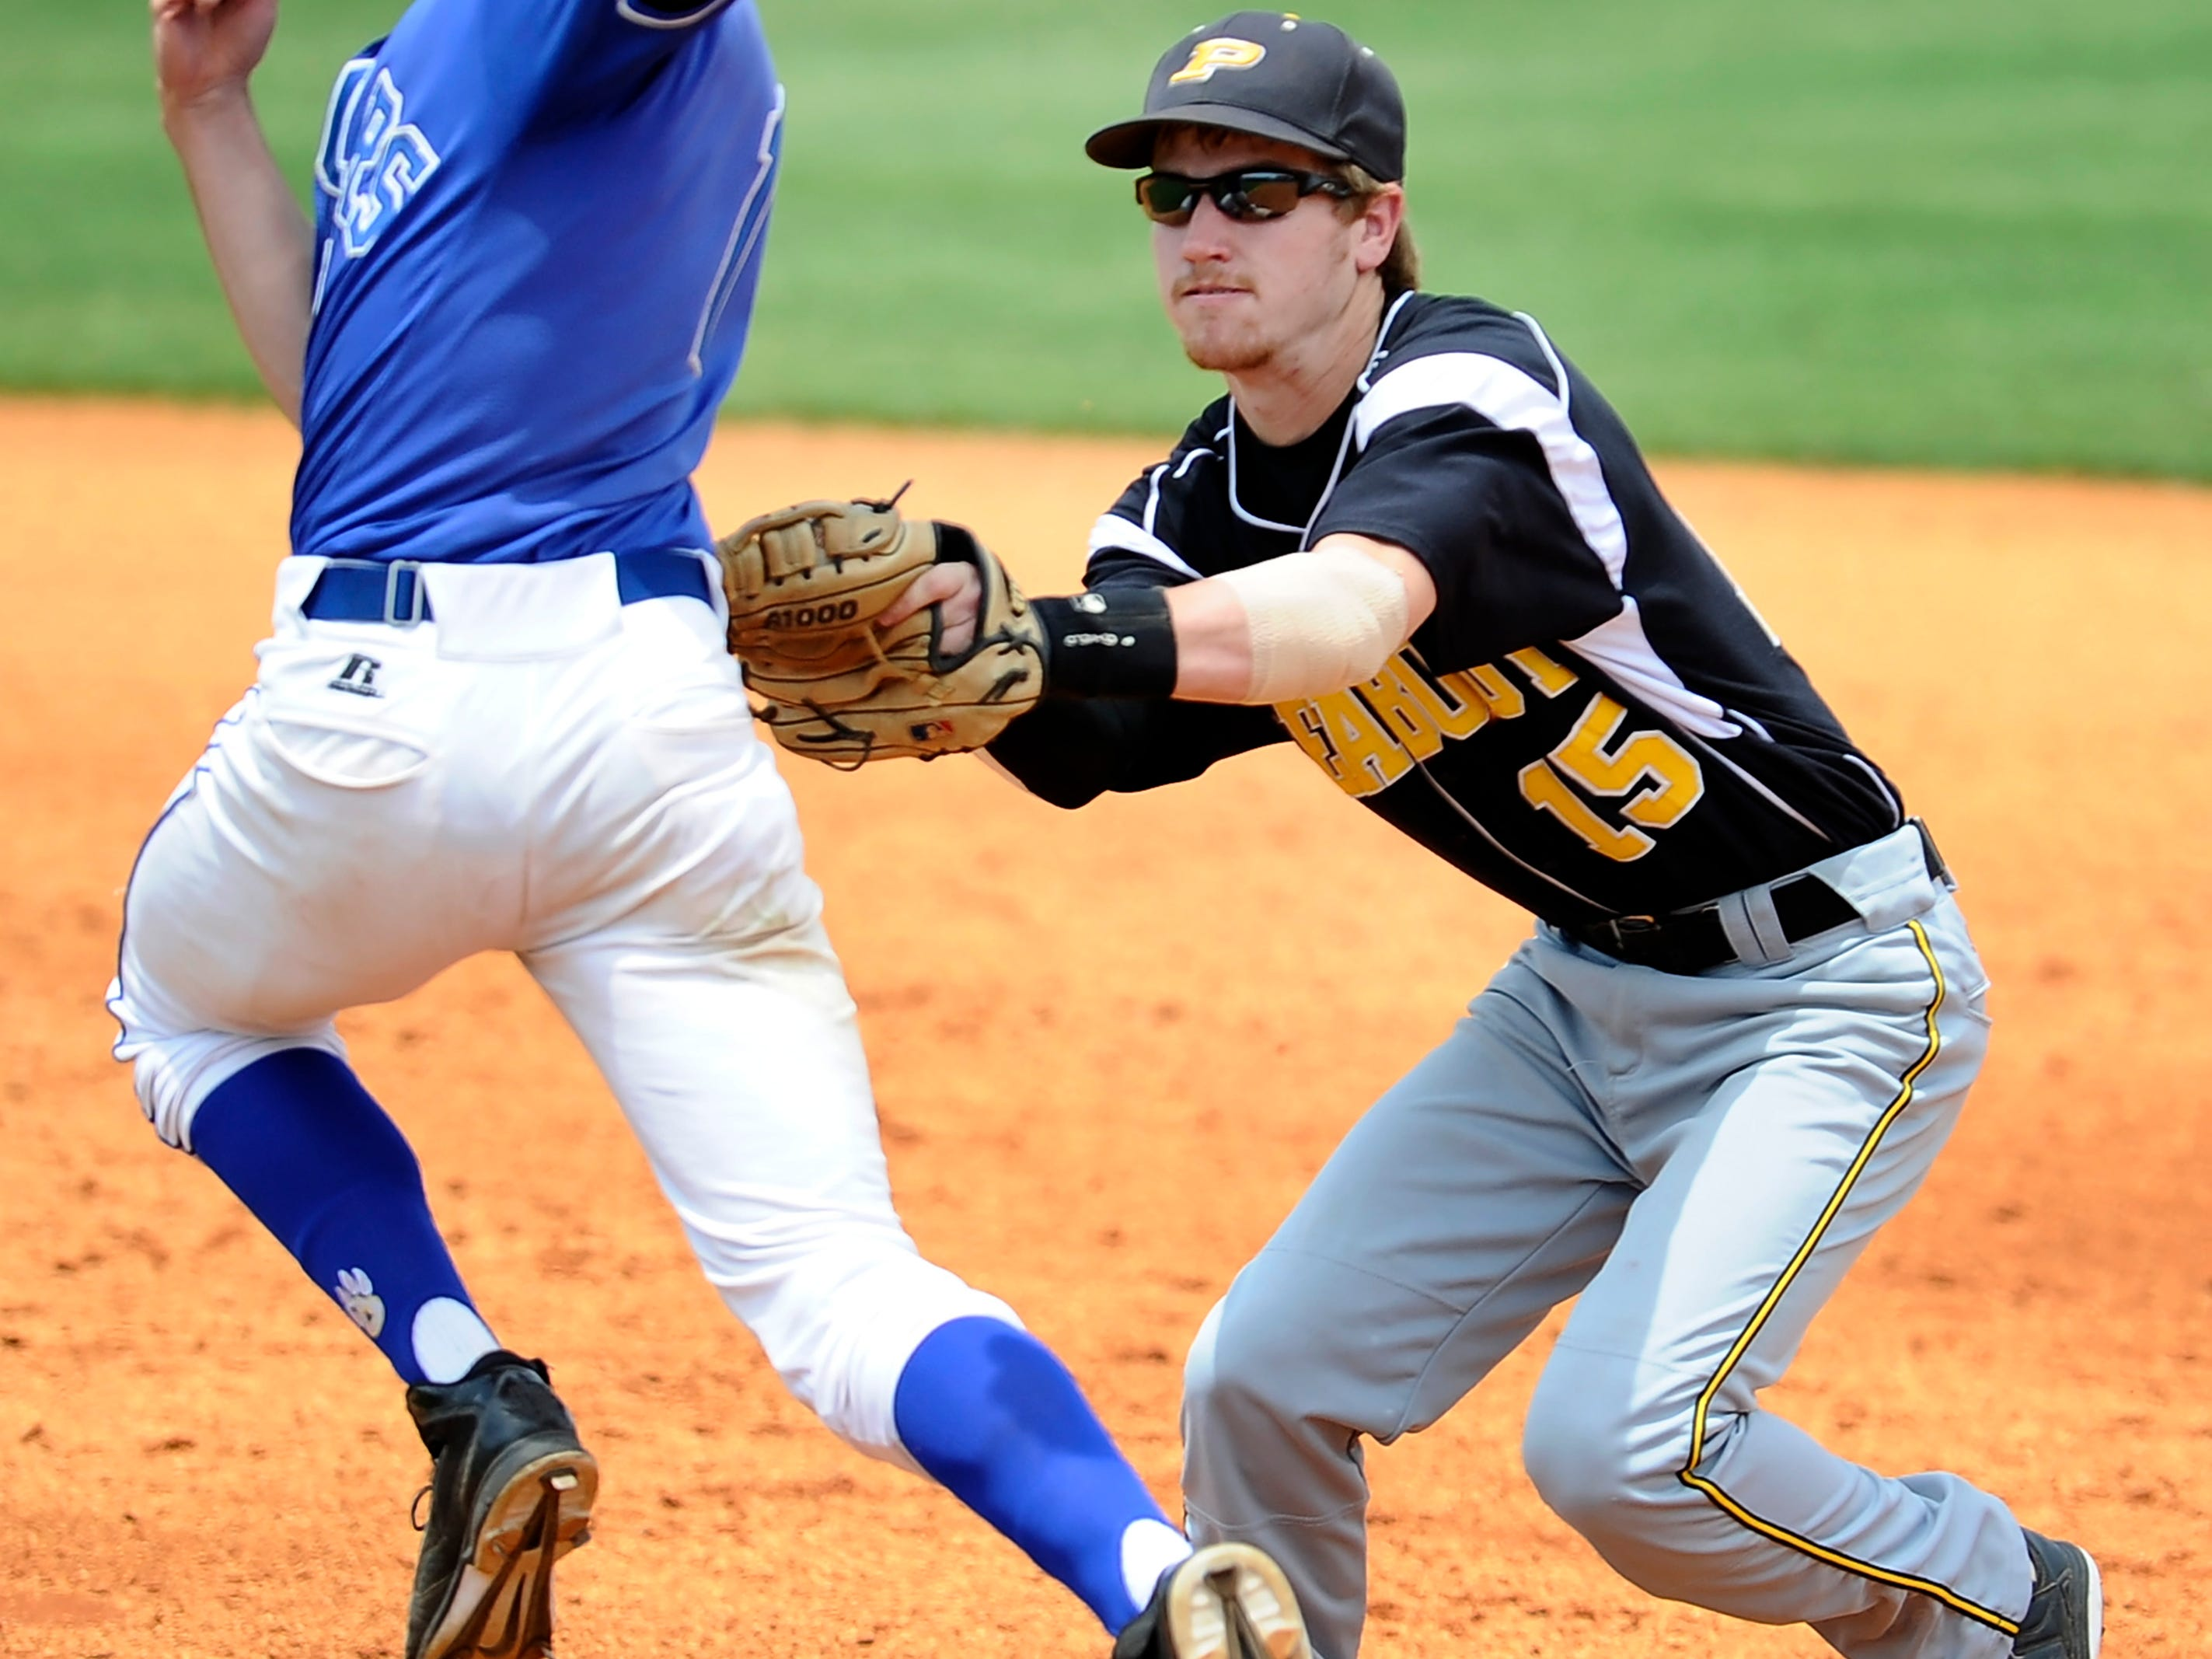 Goodpasture's Jacob Crocker (1) is tagged out by Peabody second baseman Daniel Hodges (15) as Crocker tries to take second base on Wednesday.